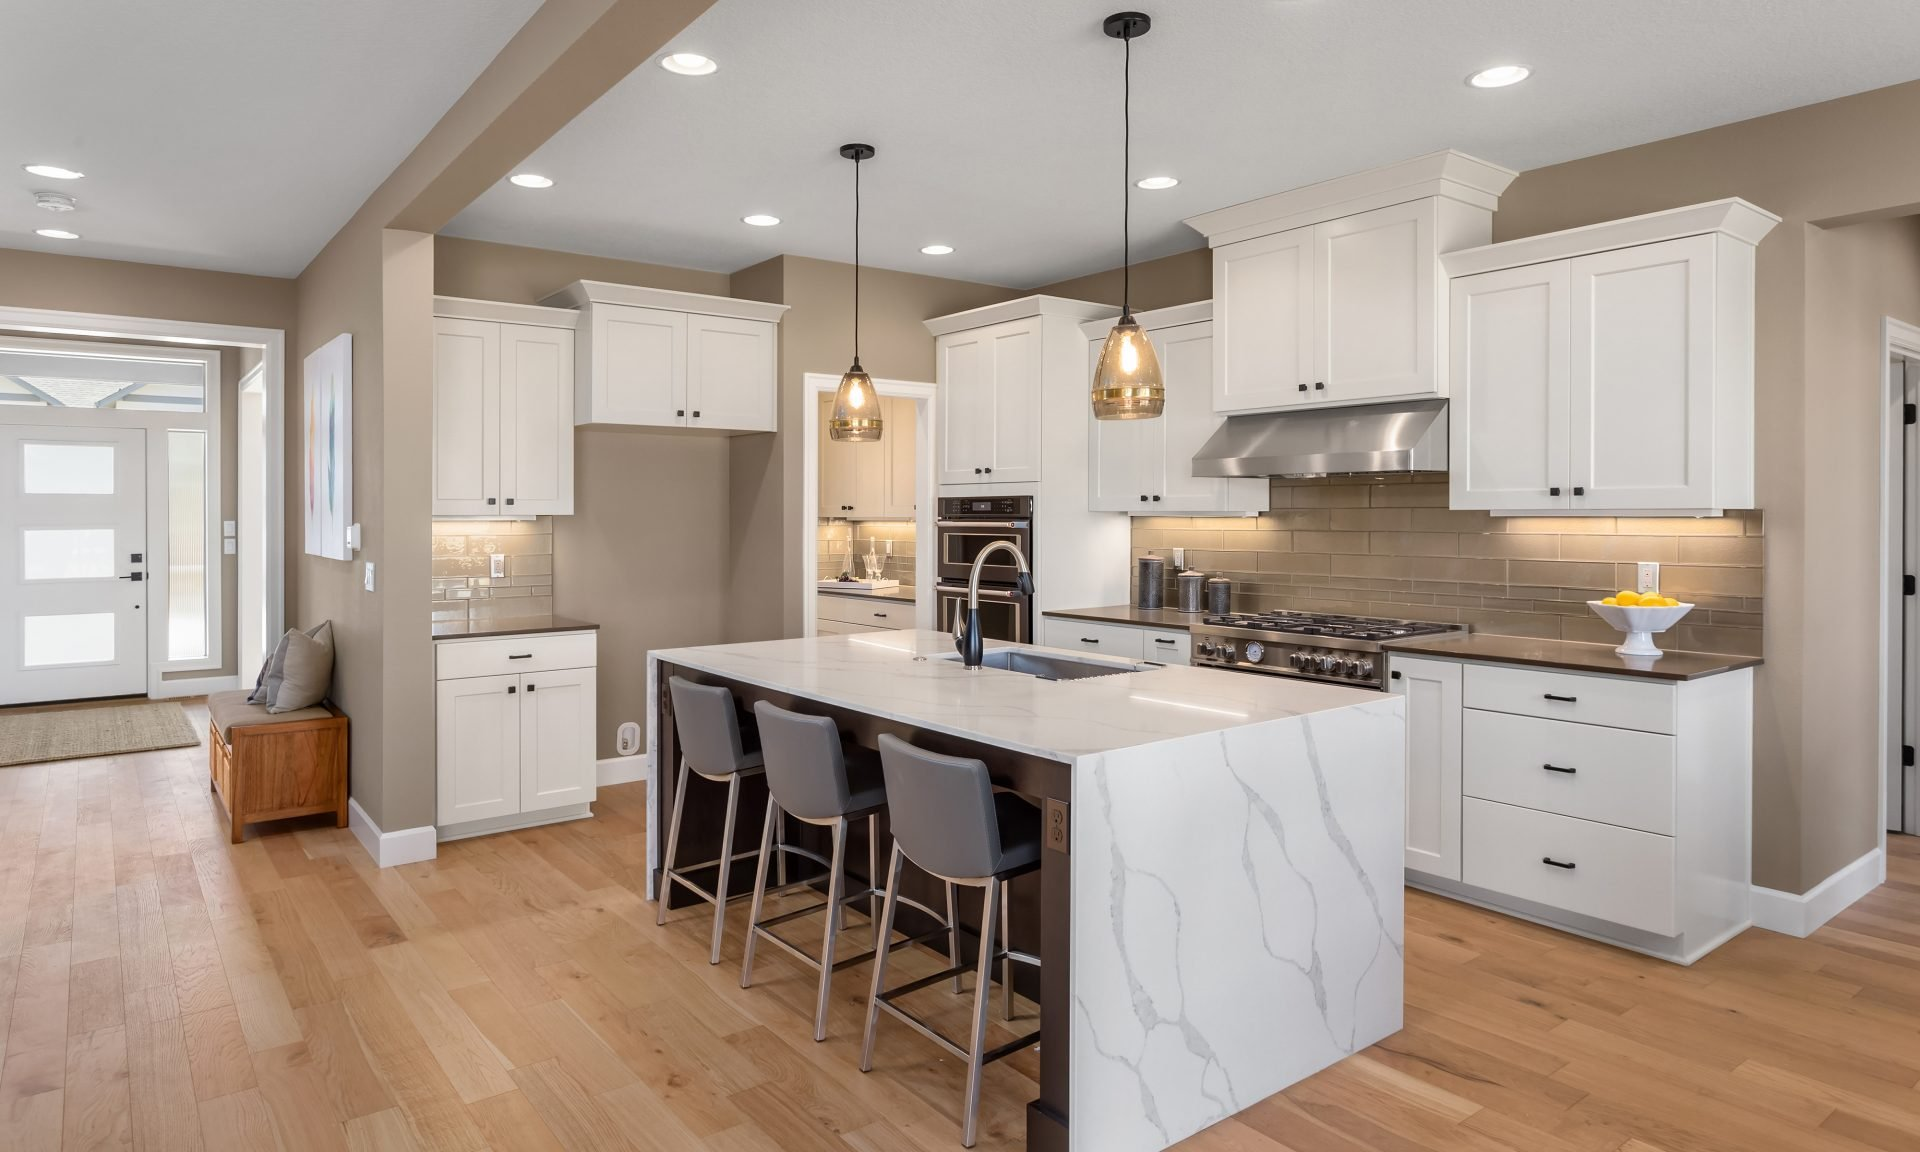 10 Countertop Materials to Make Your Kitchen Pop marble